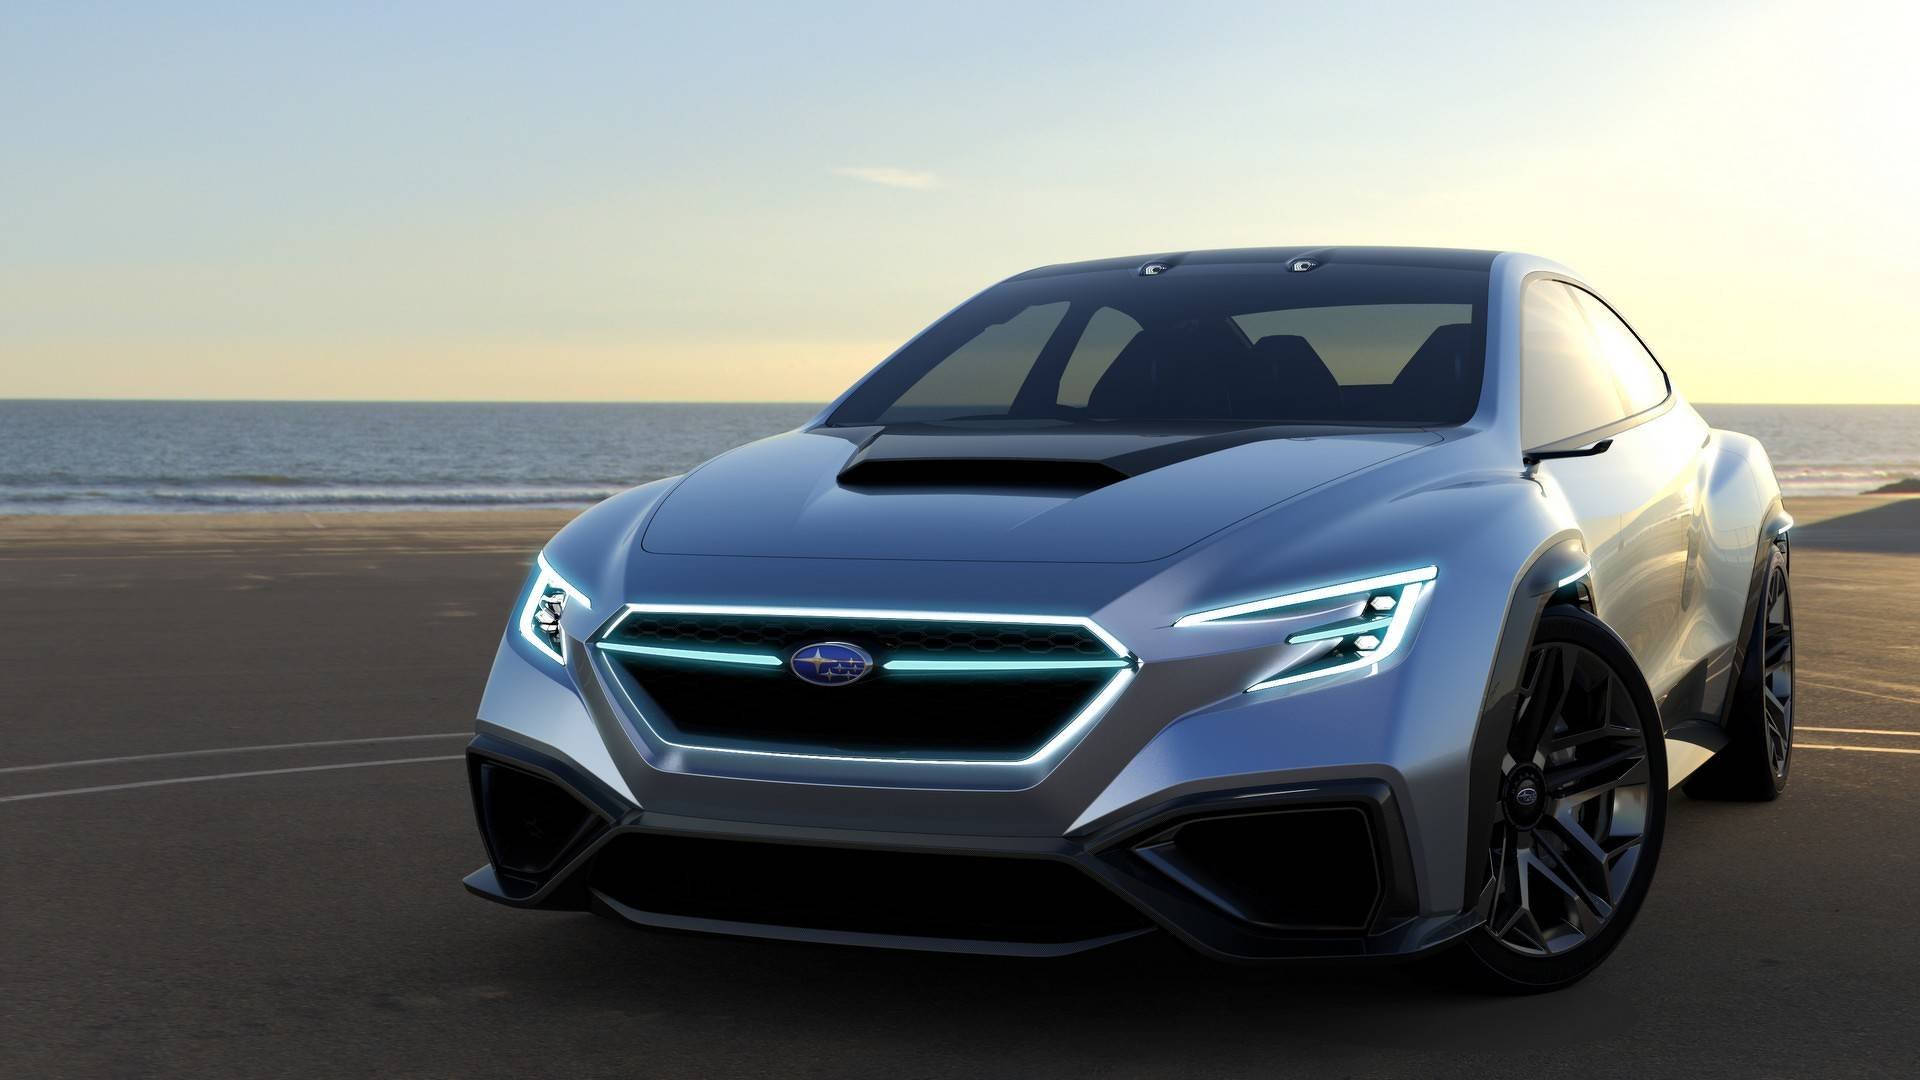 Subaru Tribeca 2016 >> Subaru Electric Vehicles Coming In 2021, PHEV In 2018 - autoevolution